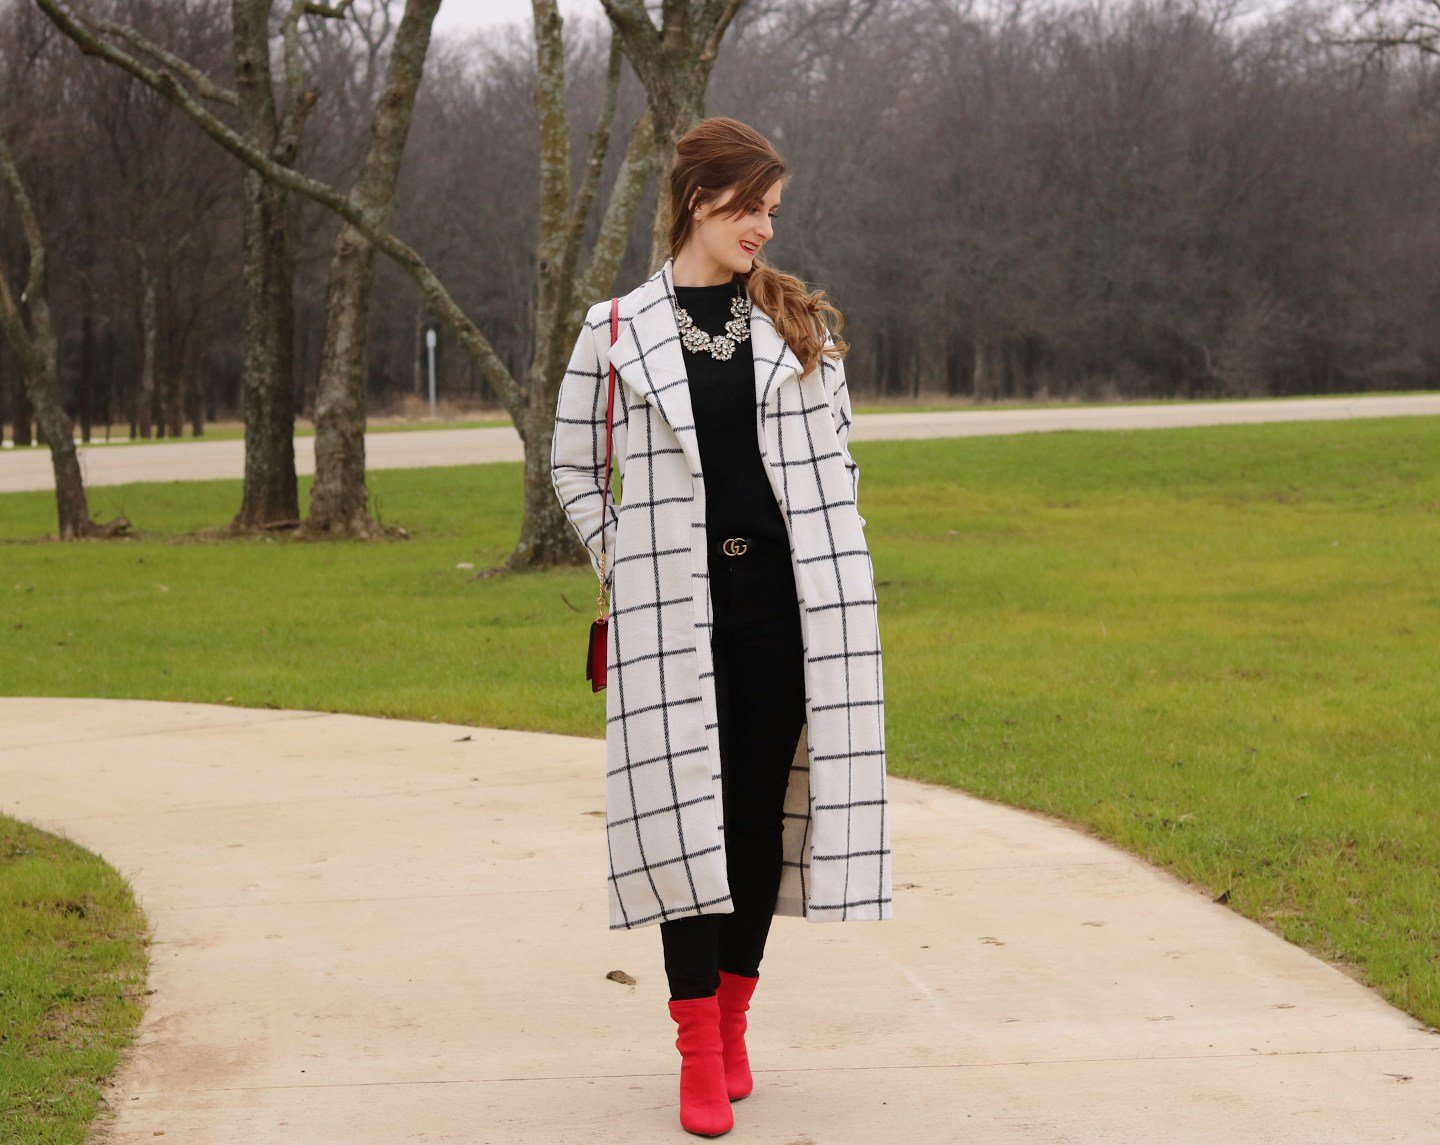 Drape Collar Grid Longline Coat  dding a pop of color to a neutral outfit   neutrals and a pop of red   all black and a pop of red   Gucci belt   red booties   red tory burch bag   sugar fix necklace   draped collar coat   shein outfit